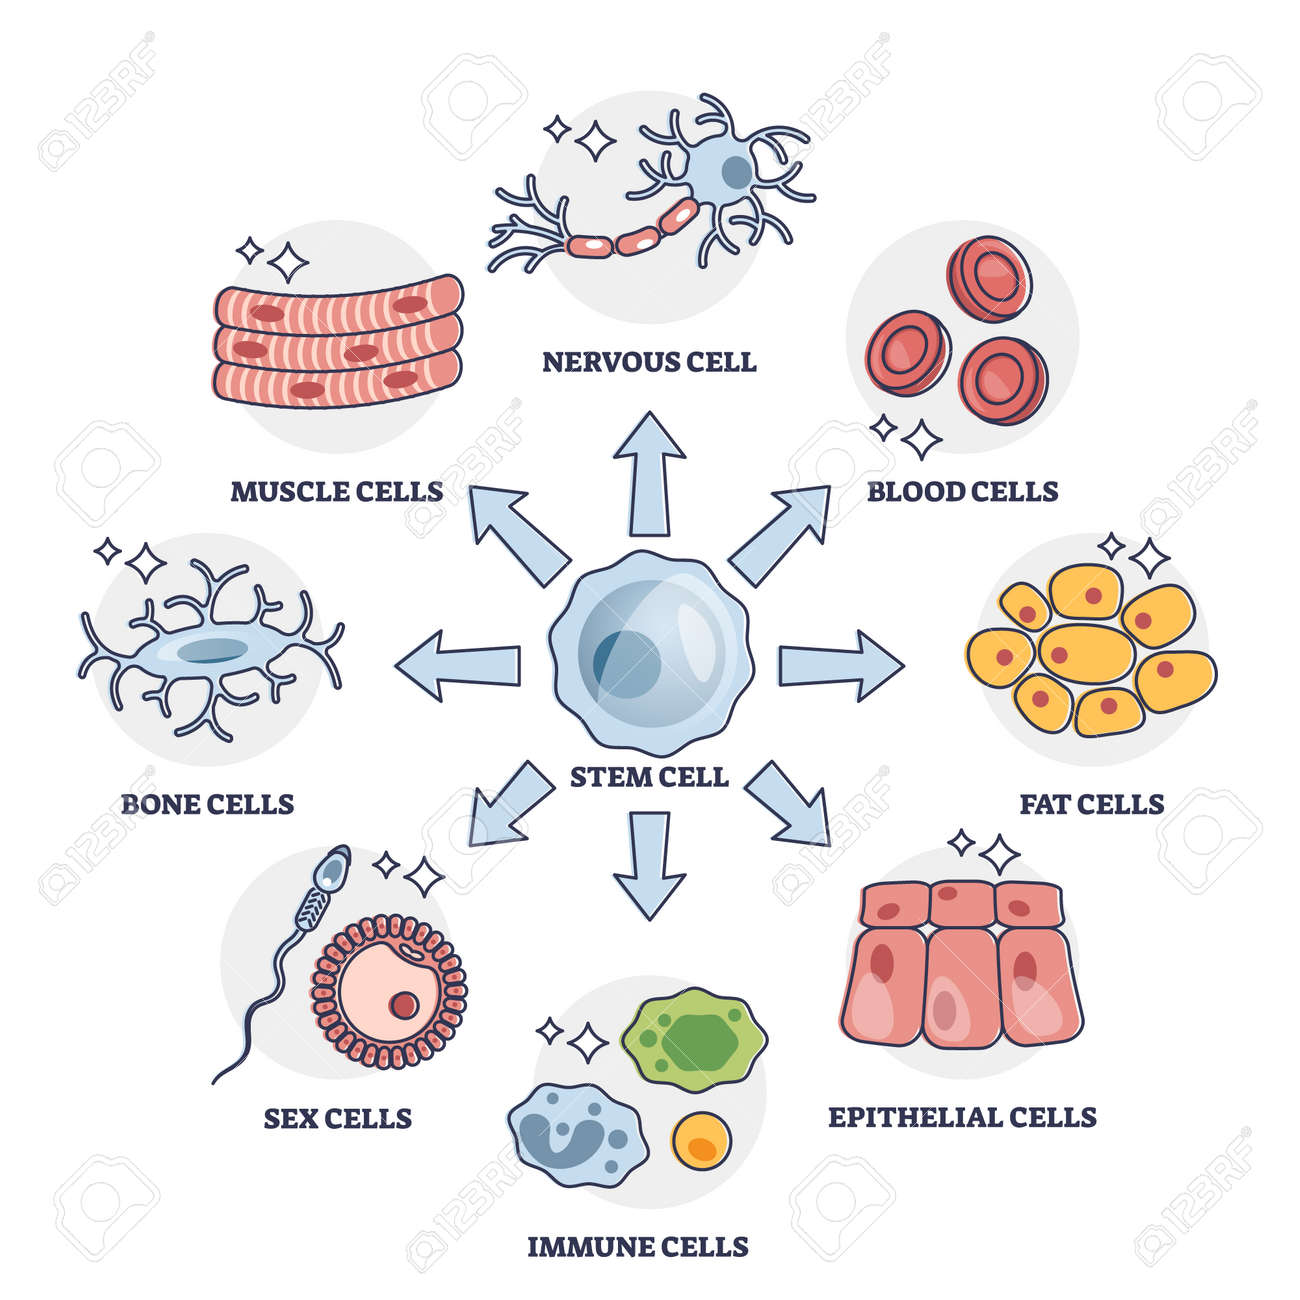 Cellular differentiation process with stem cell type change outline diagram - 172997537